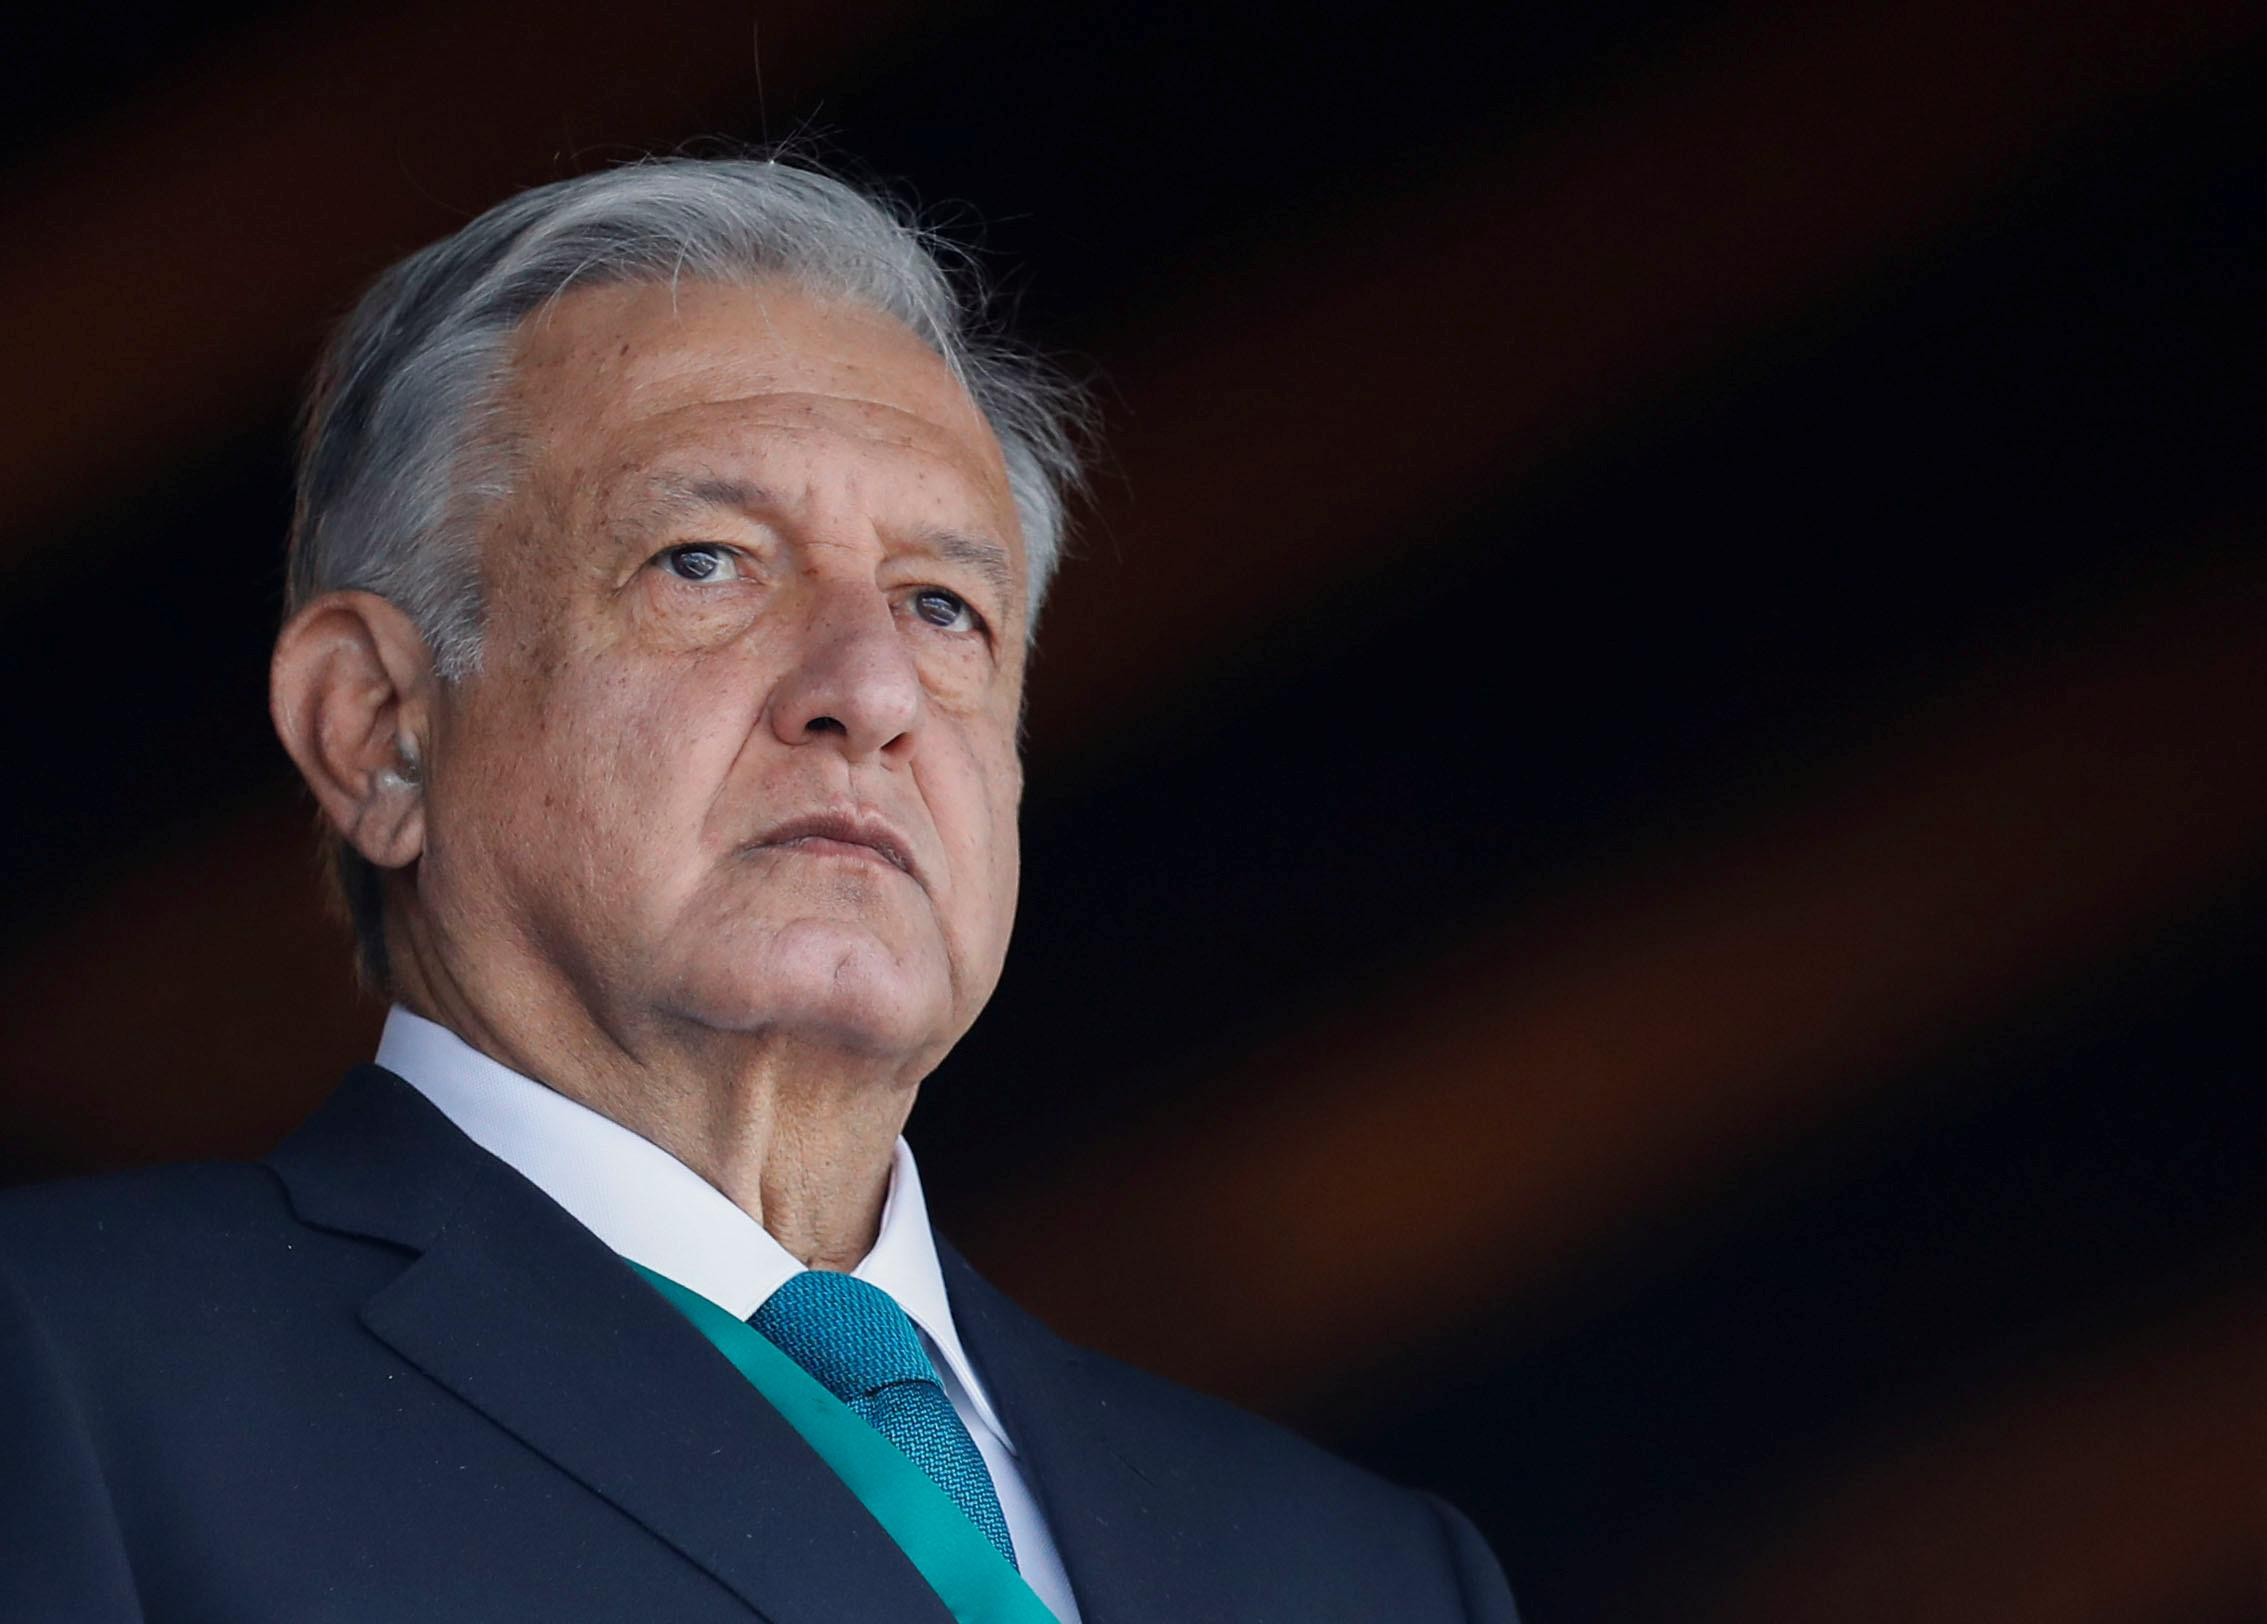 Mexico to keep fuel prices stable despite Saudi attacks: president